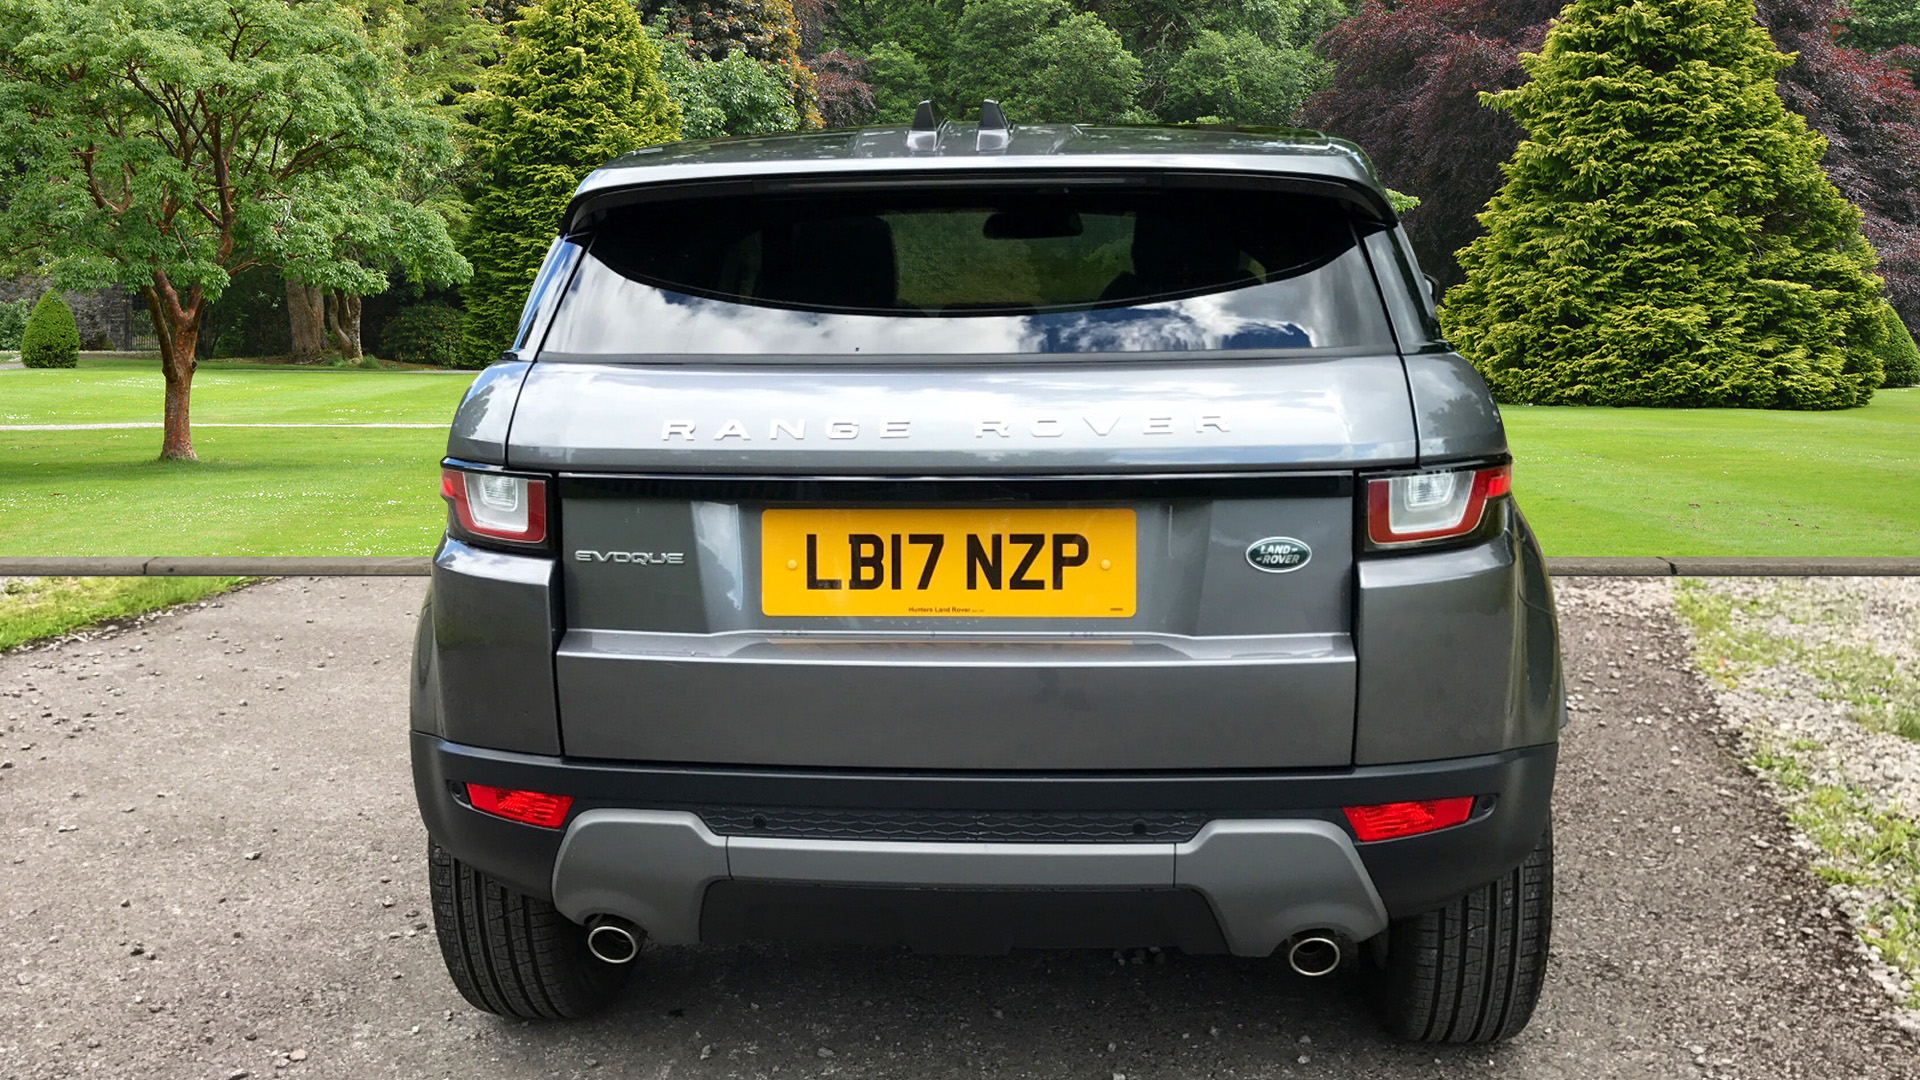 Used Land Rover Range Rover Evoque SE Tech TD4 Grey LB17NZP